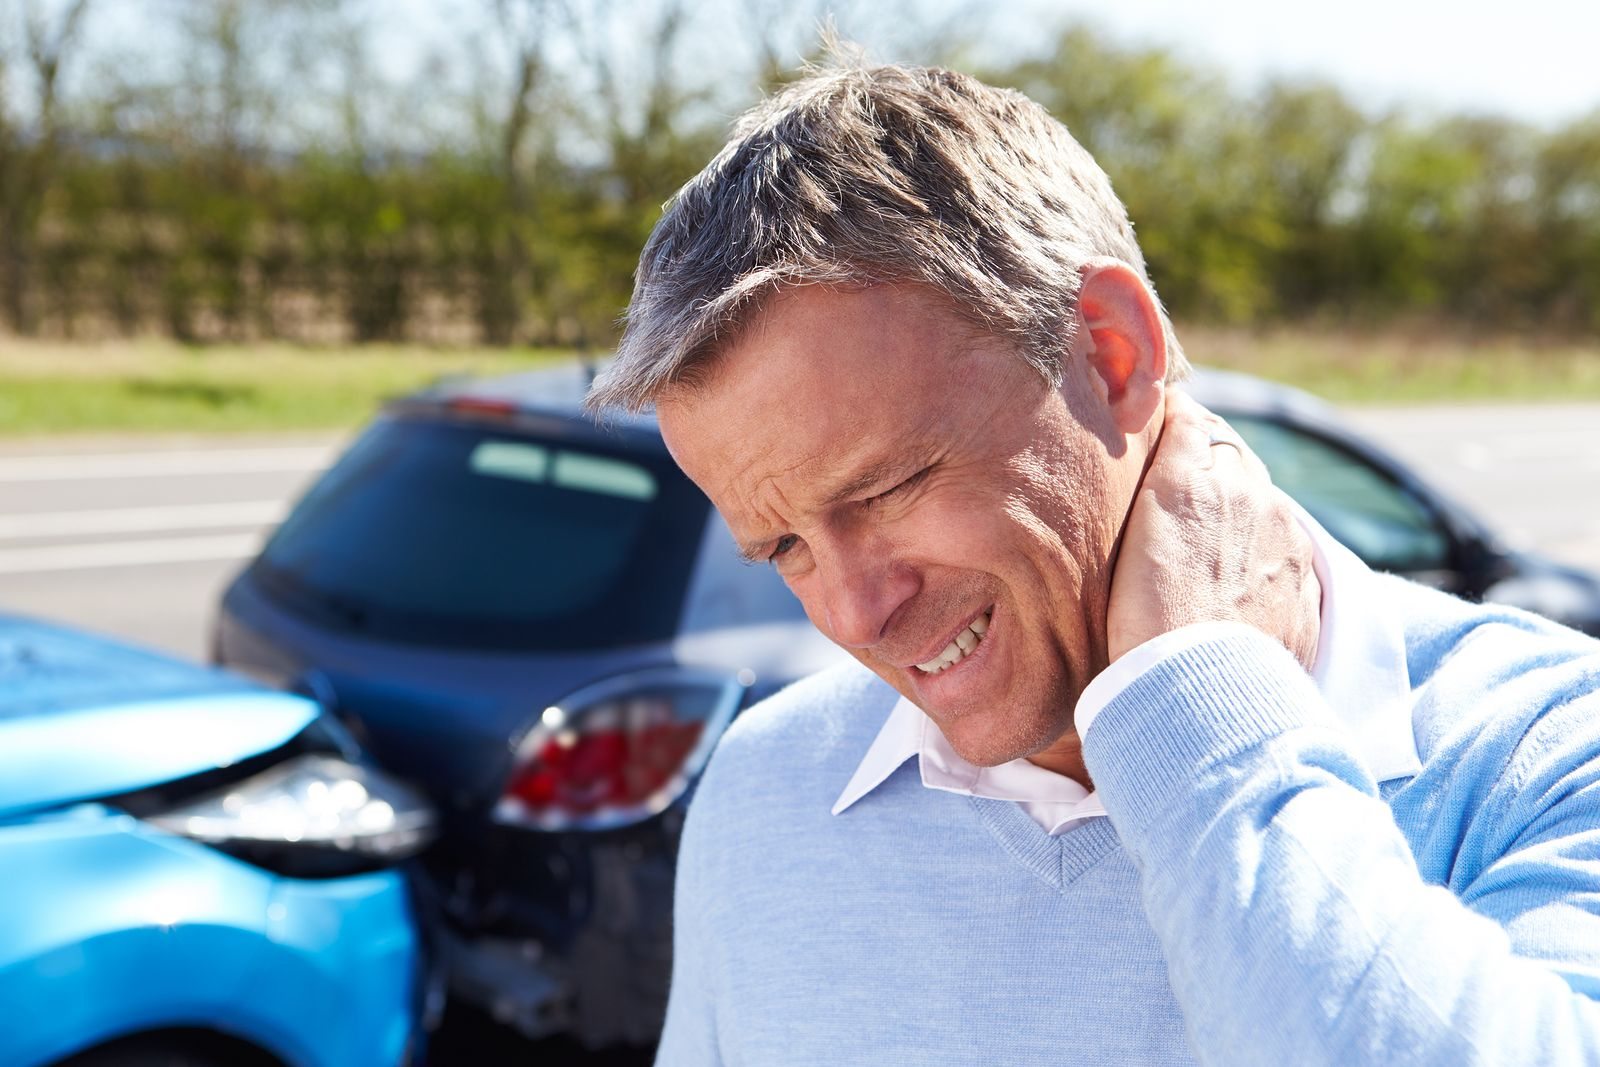 Traumatic Injury treatment in Fort Worth